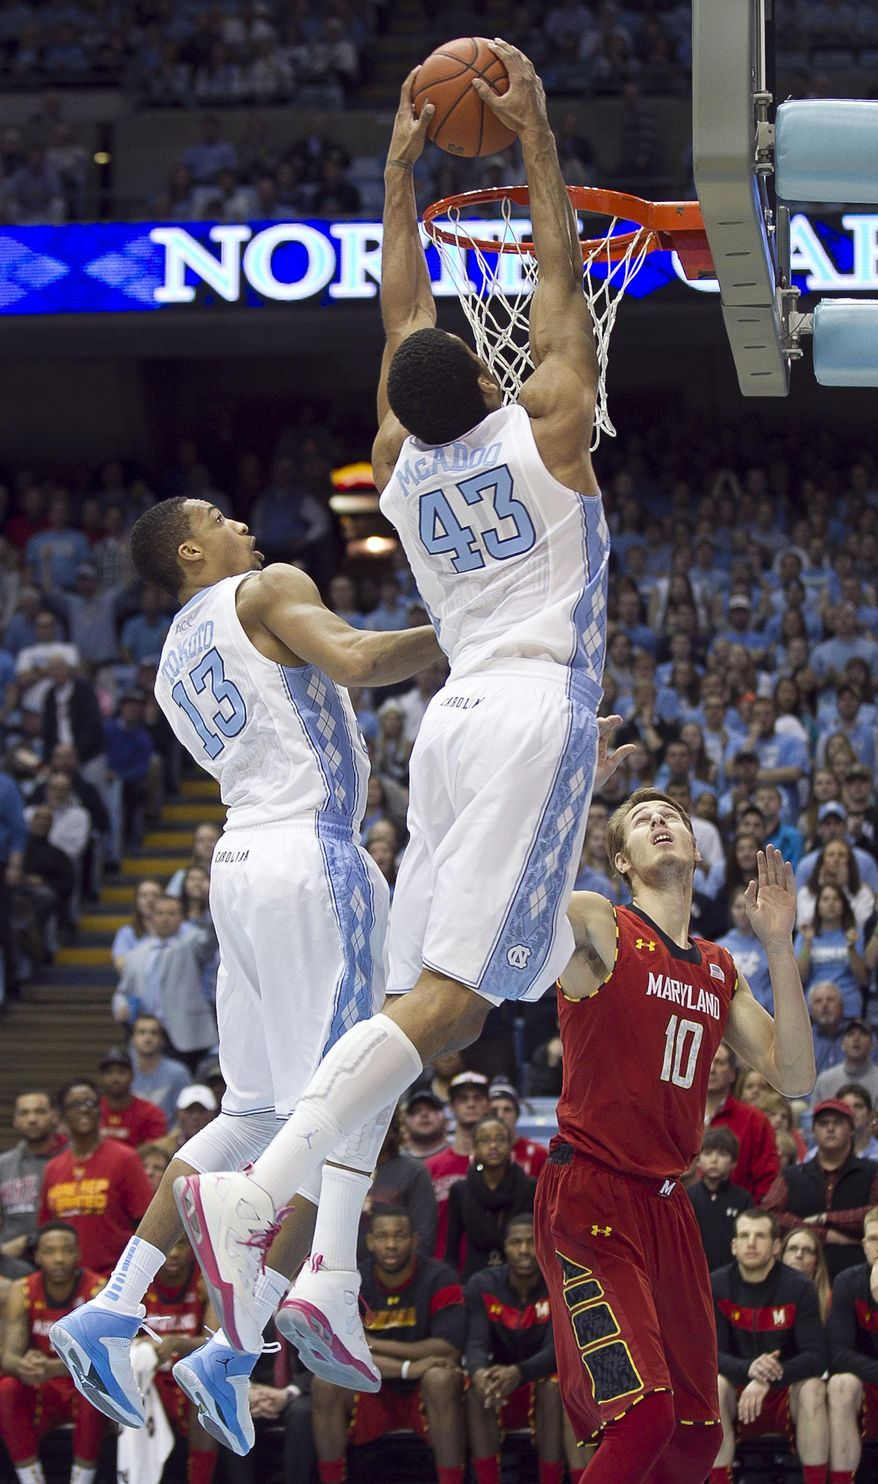 North Carolina's James Michael McAdoo (43) dunks on Maryland's Jake Layman (10) during the first half  of an NCAA basketball game, Tuesday, Feb. 4, 2014 at the Smith Center in Chapel Hill, N.C. (AP Photo/The News & Observer, Robert Willett)